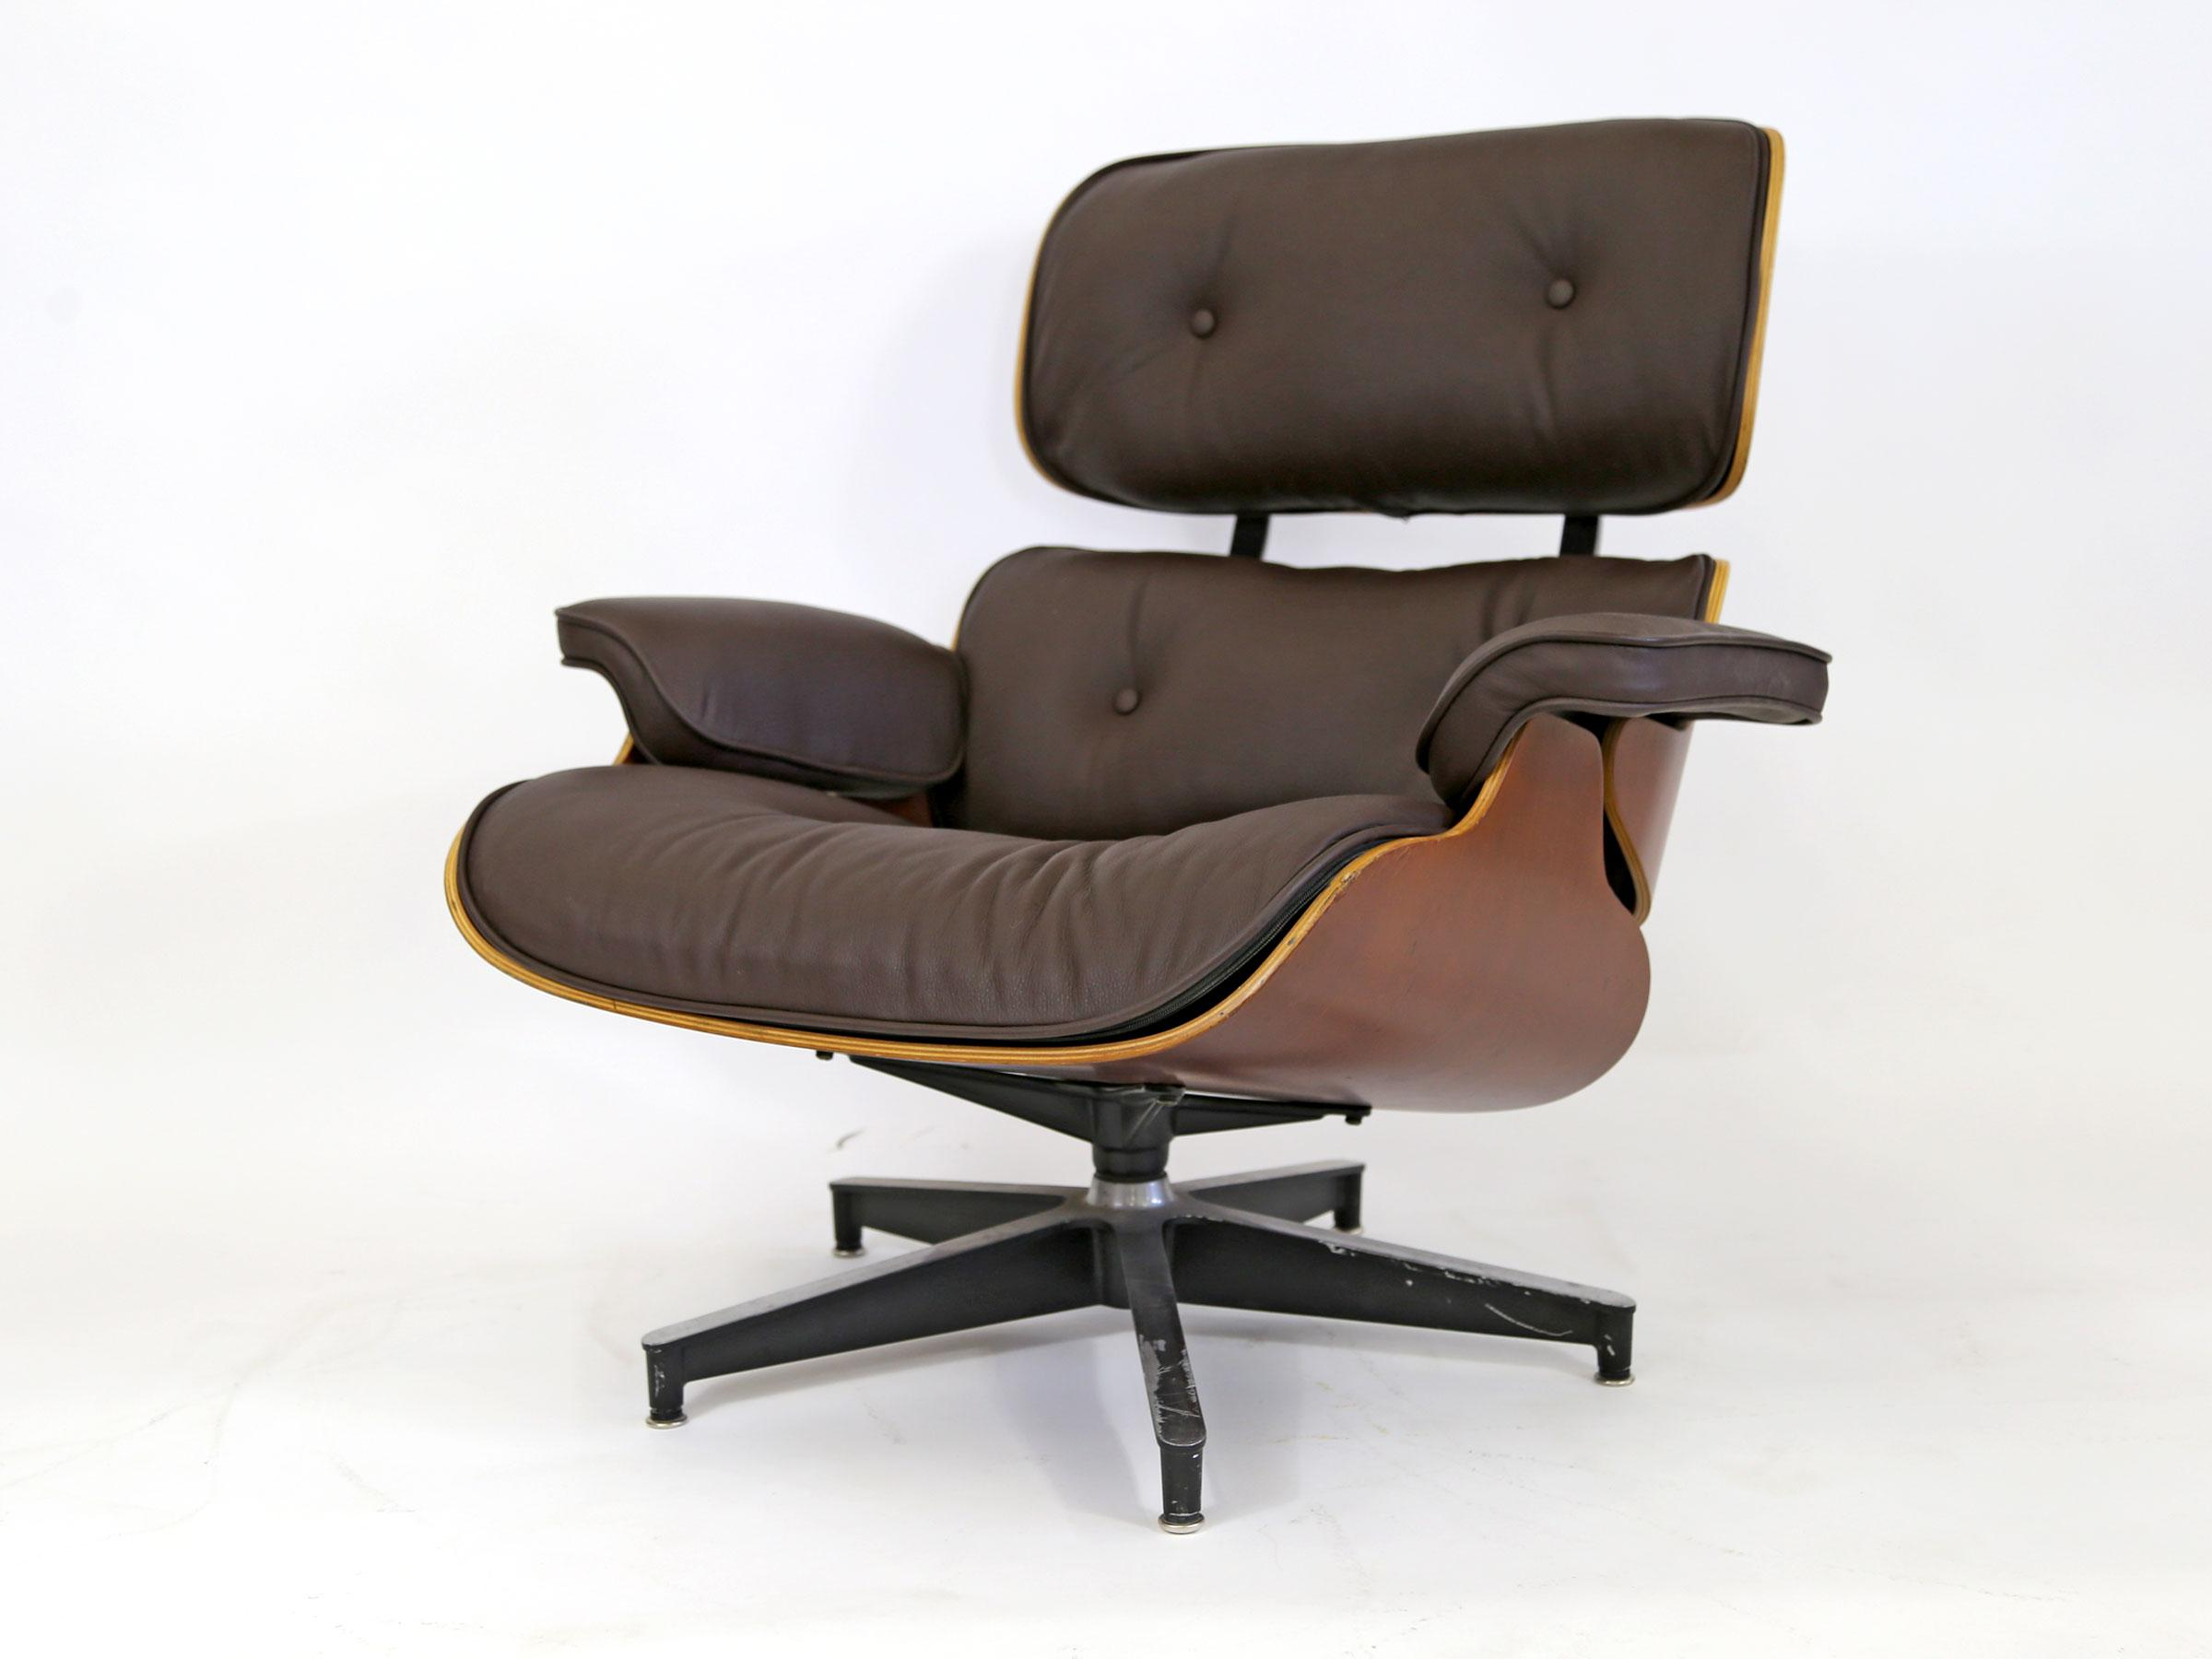 JFK Concorde Room Original Eames 670 Lounge Chair   Image 4 Of 11